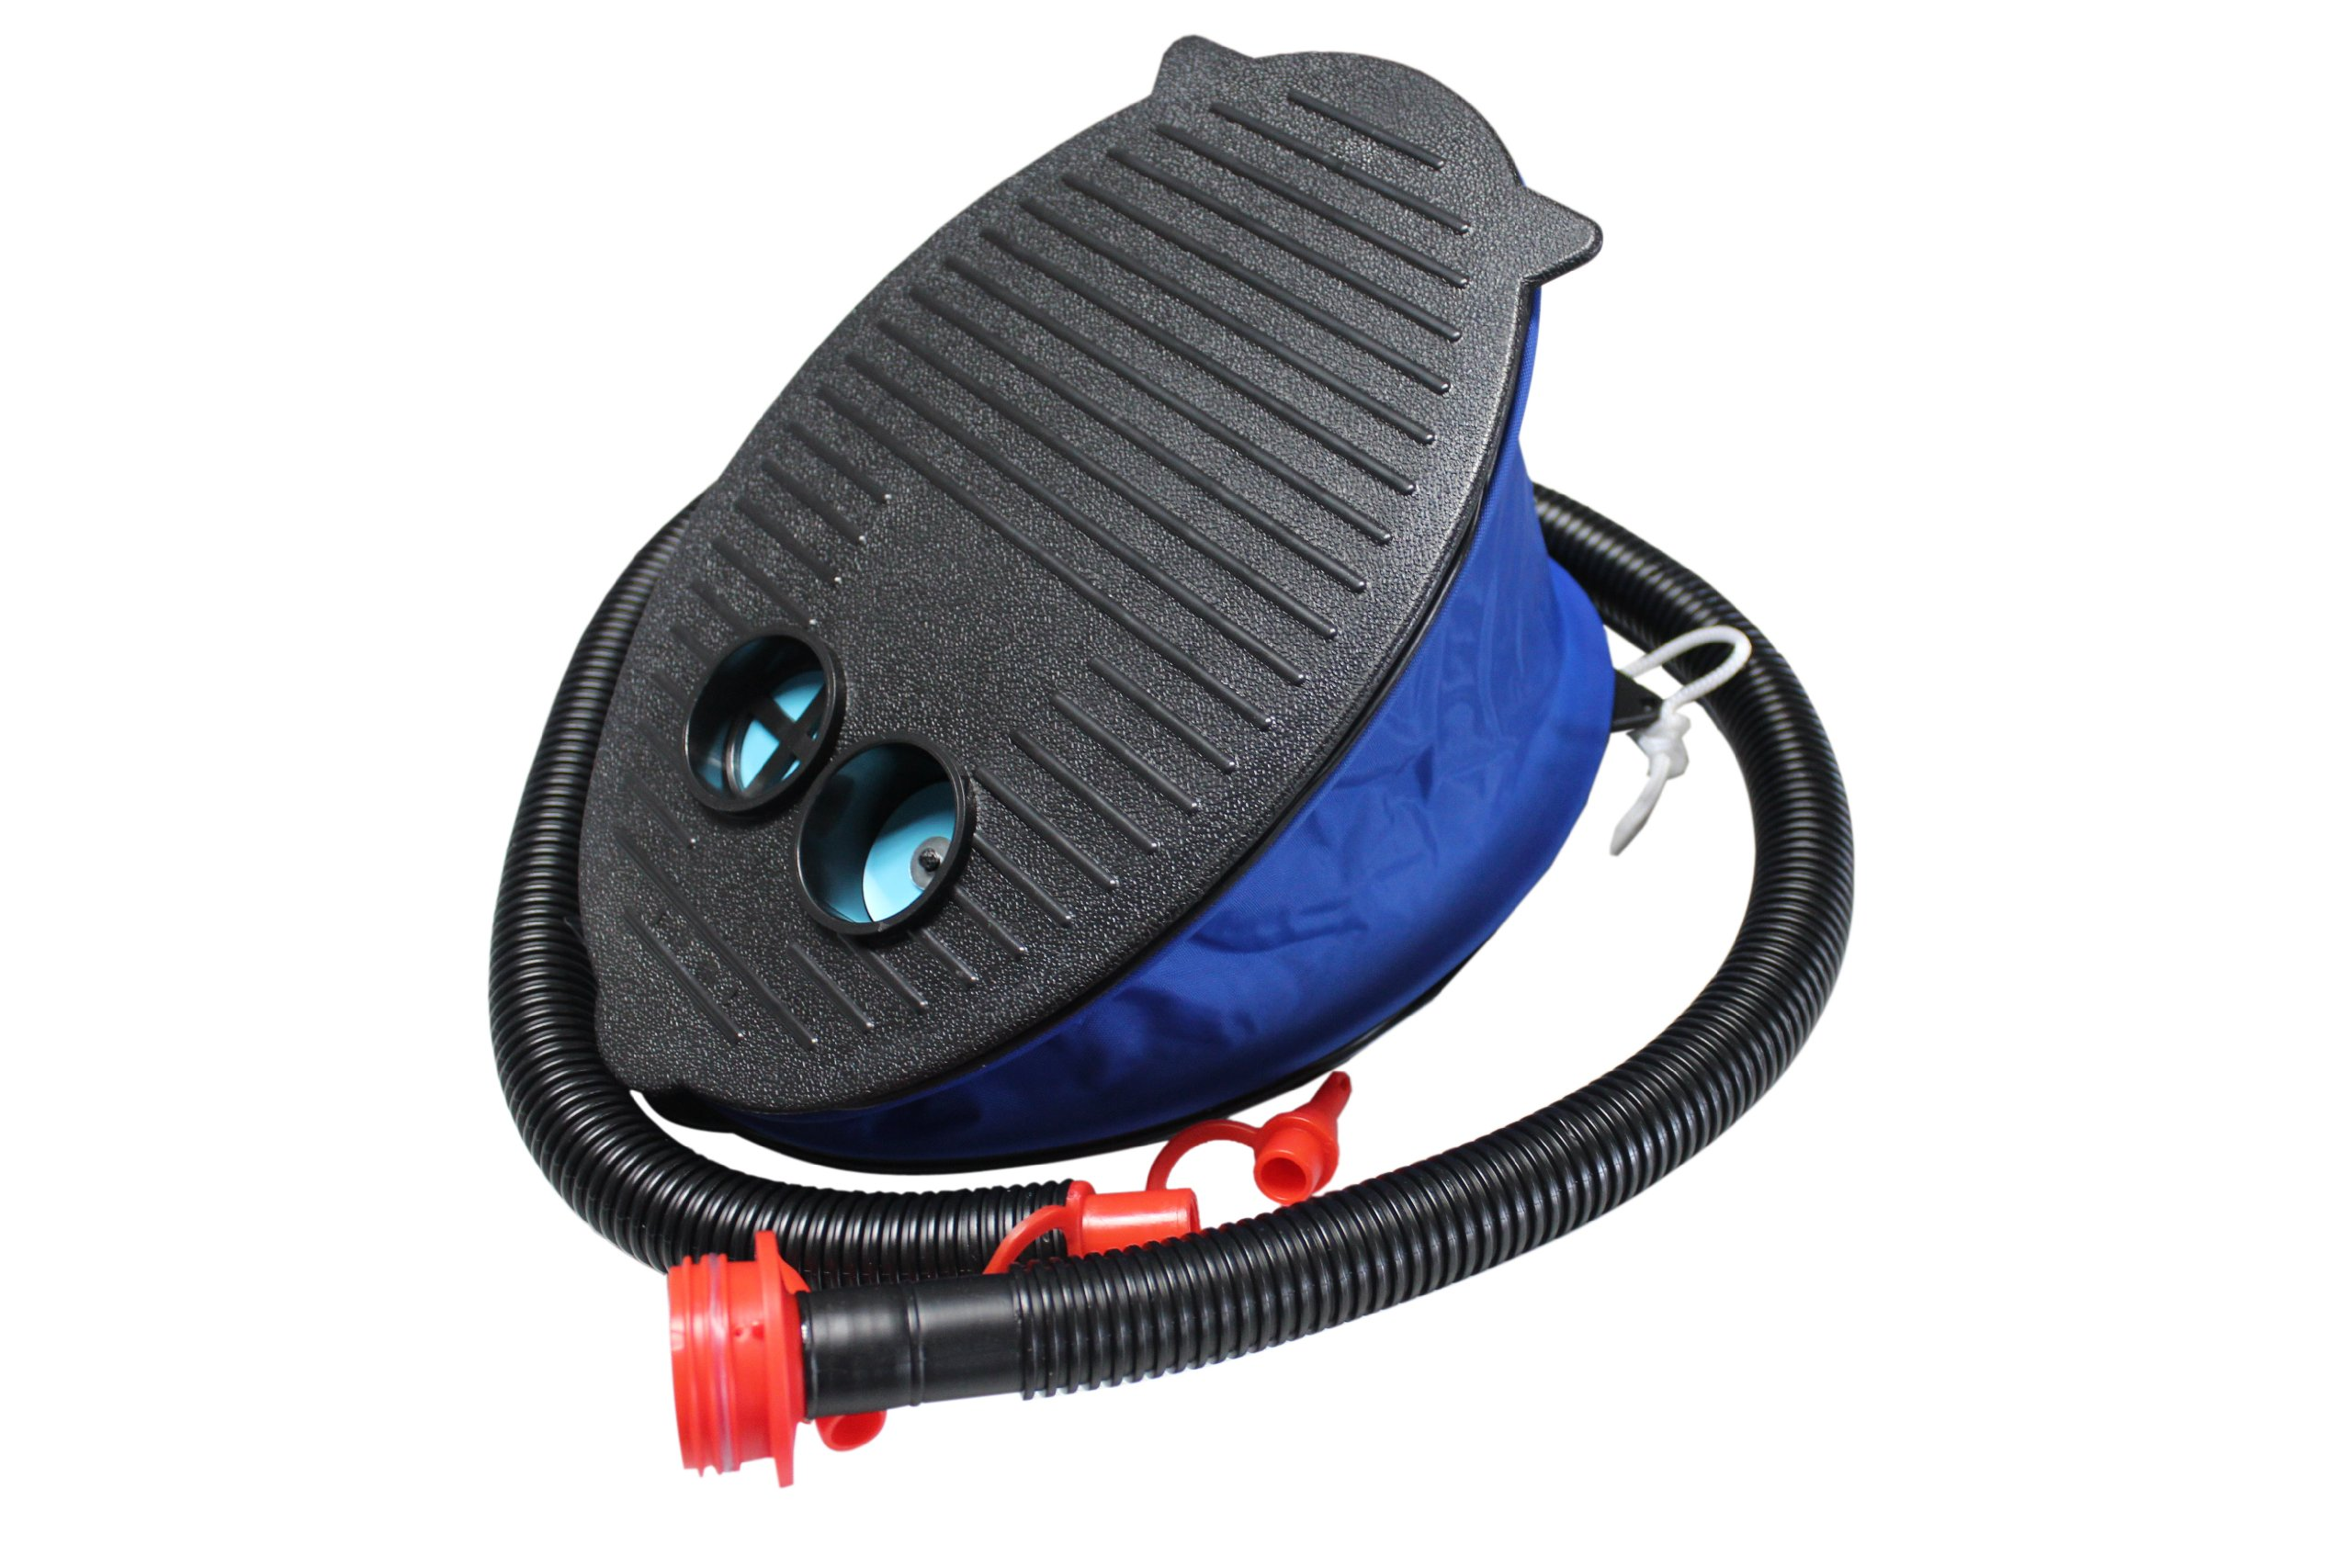 Intex    Outdoor Foot Pump available in Multi - Coloured - Size 28 cm 5